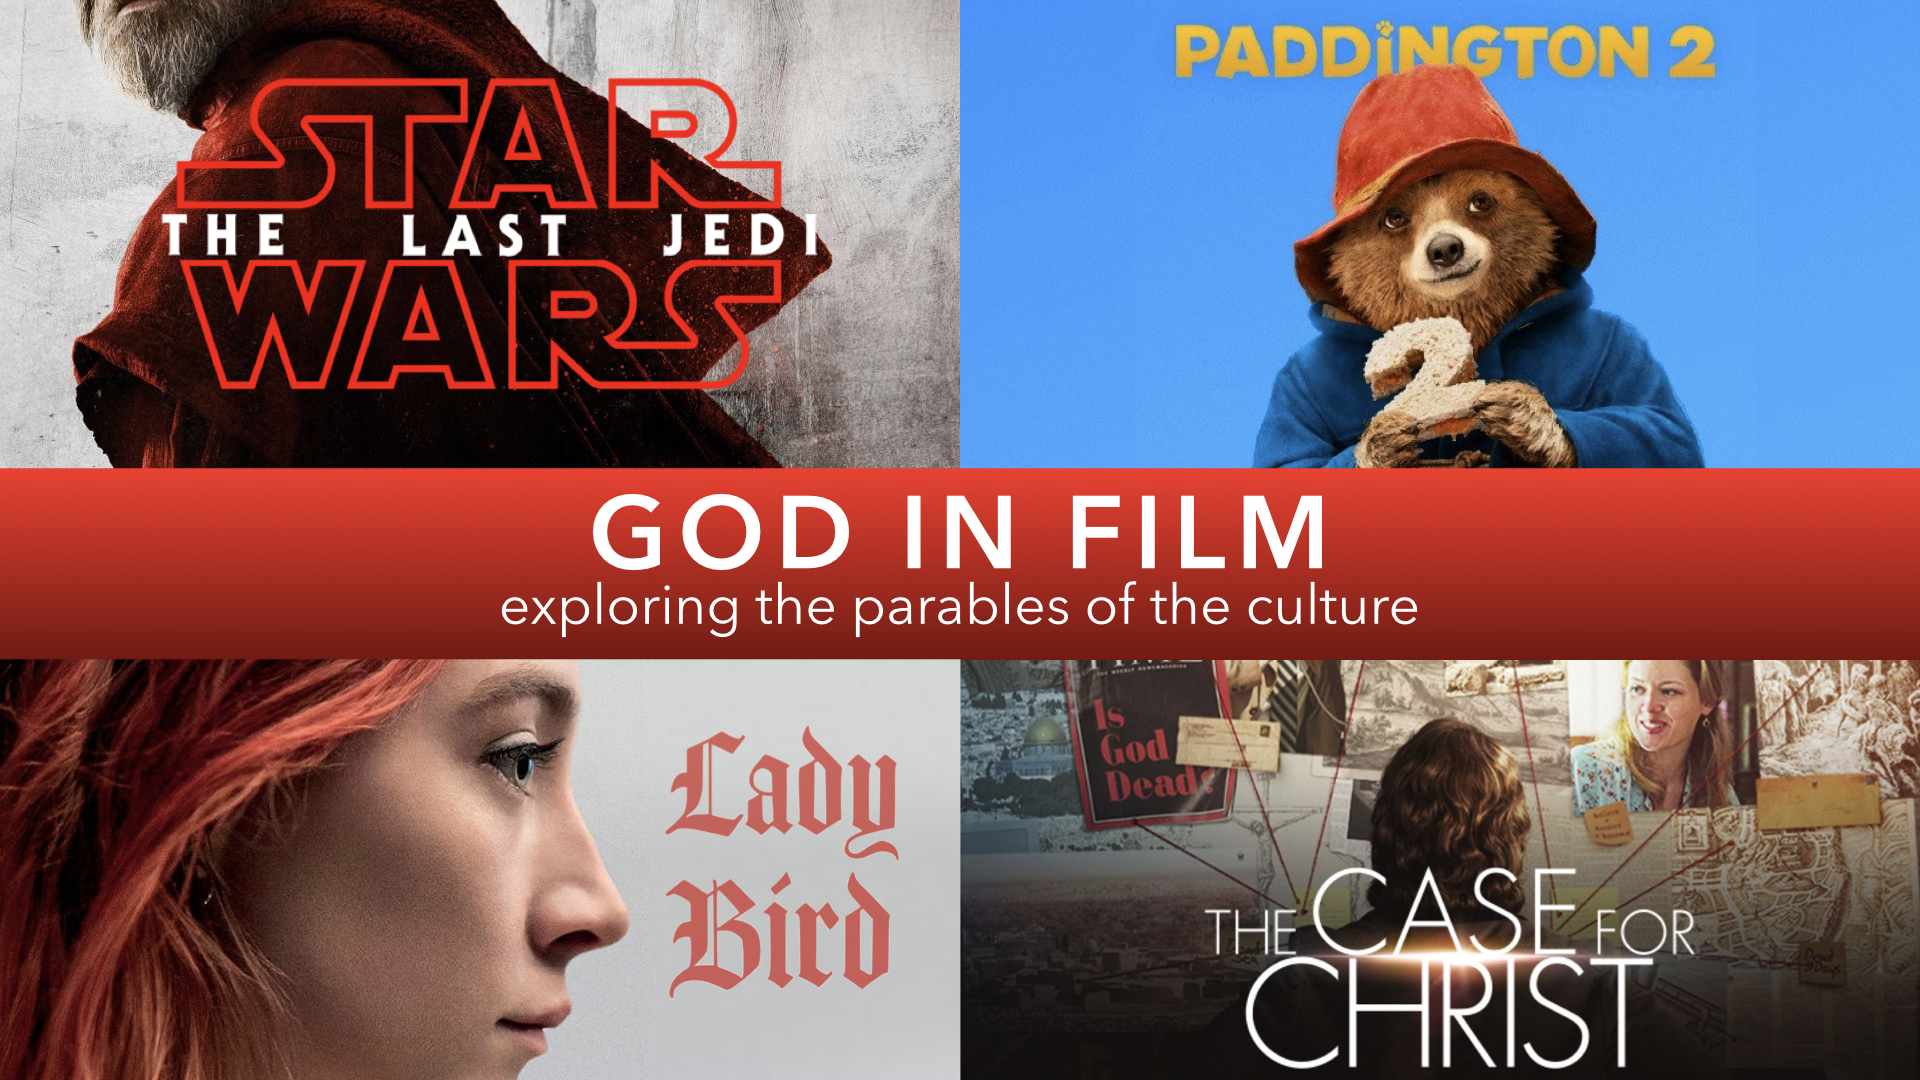 GOD IN FILM 2018 | STAR WARS - THE LAST JEDI: GET BACK IN THE GAME - PHIL CHORLIAN | 8.5.2018 | WATCH